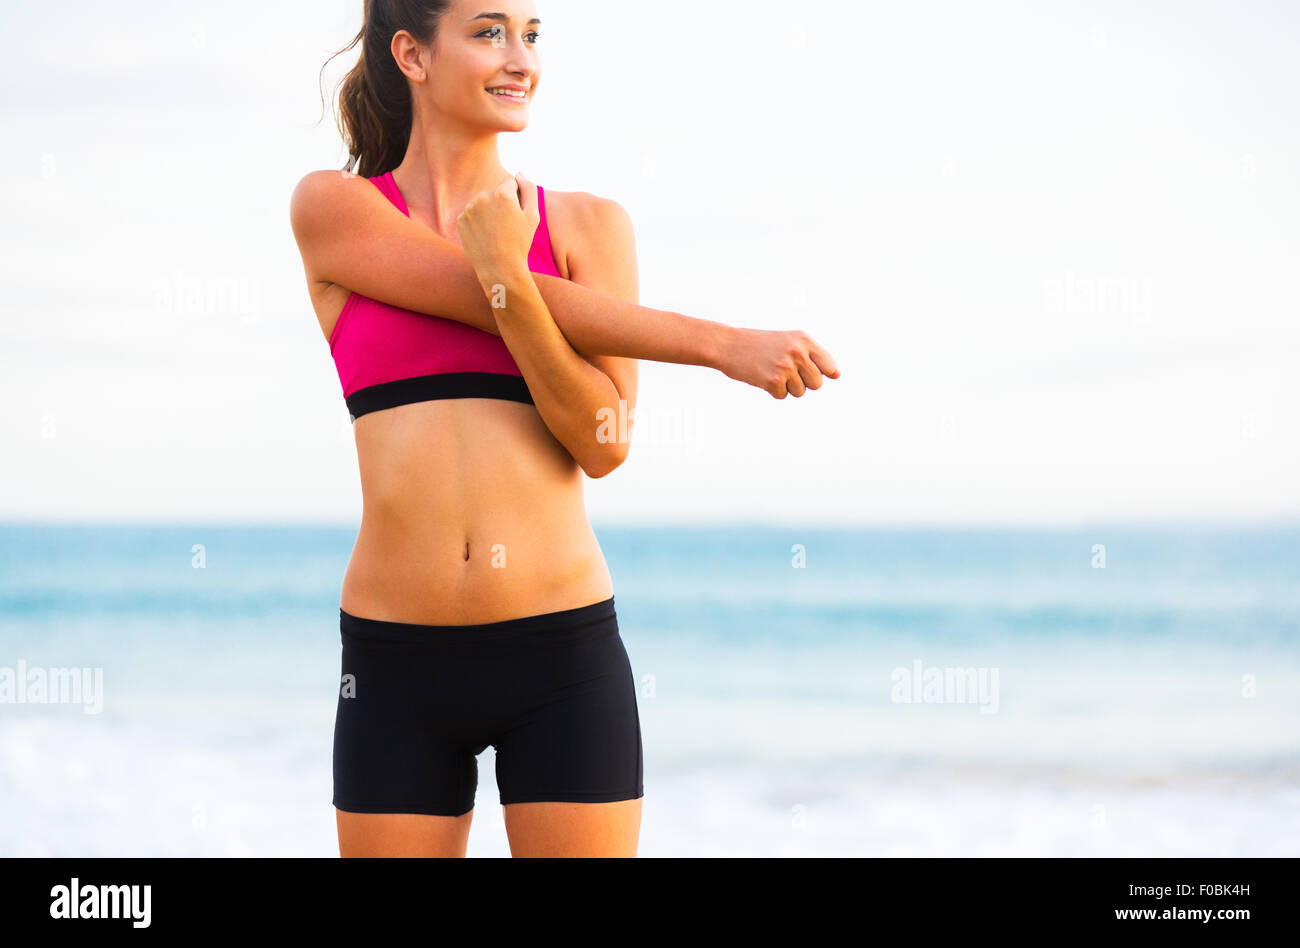 Young Attractive Fitness Woman Stretching on the Beach, Working Out. Healthy Active Outdoor Lifestyle. - Stock Image